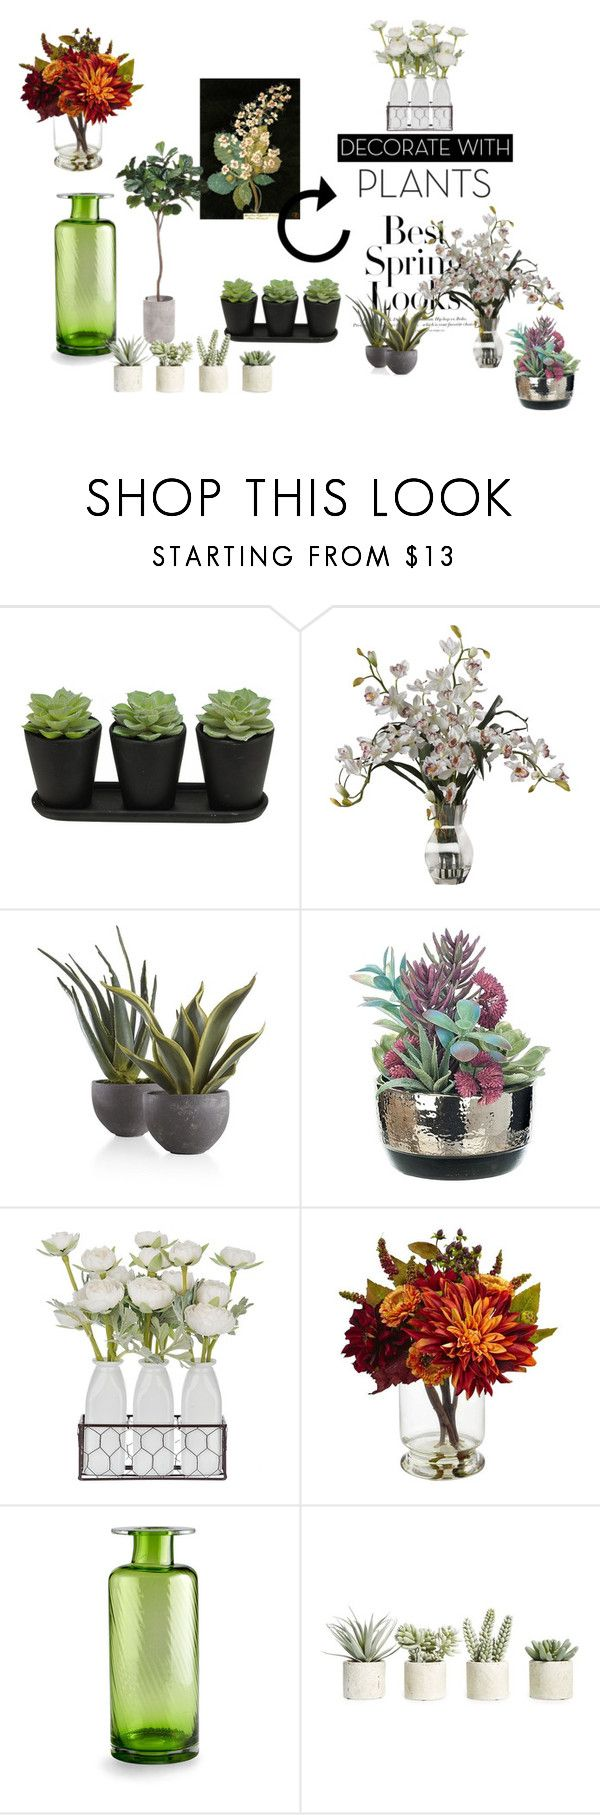 """#planters #plants"" by hajer-bh ❤ liked on Polyvore featuring interior, interiors, interior design, home, home decor, interior decorating, H&M, Nearly Natural, Cyan Design and Allstate Floral"